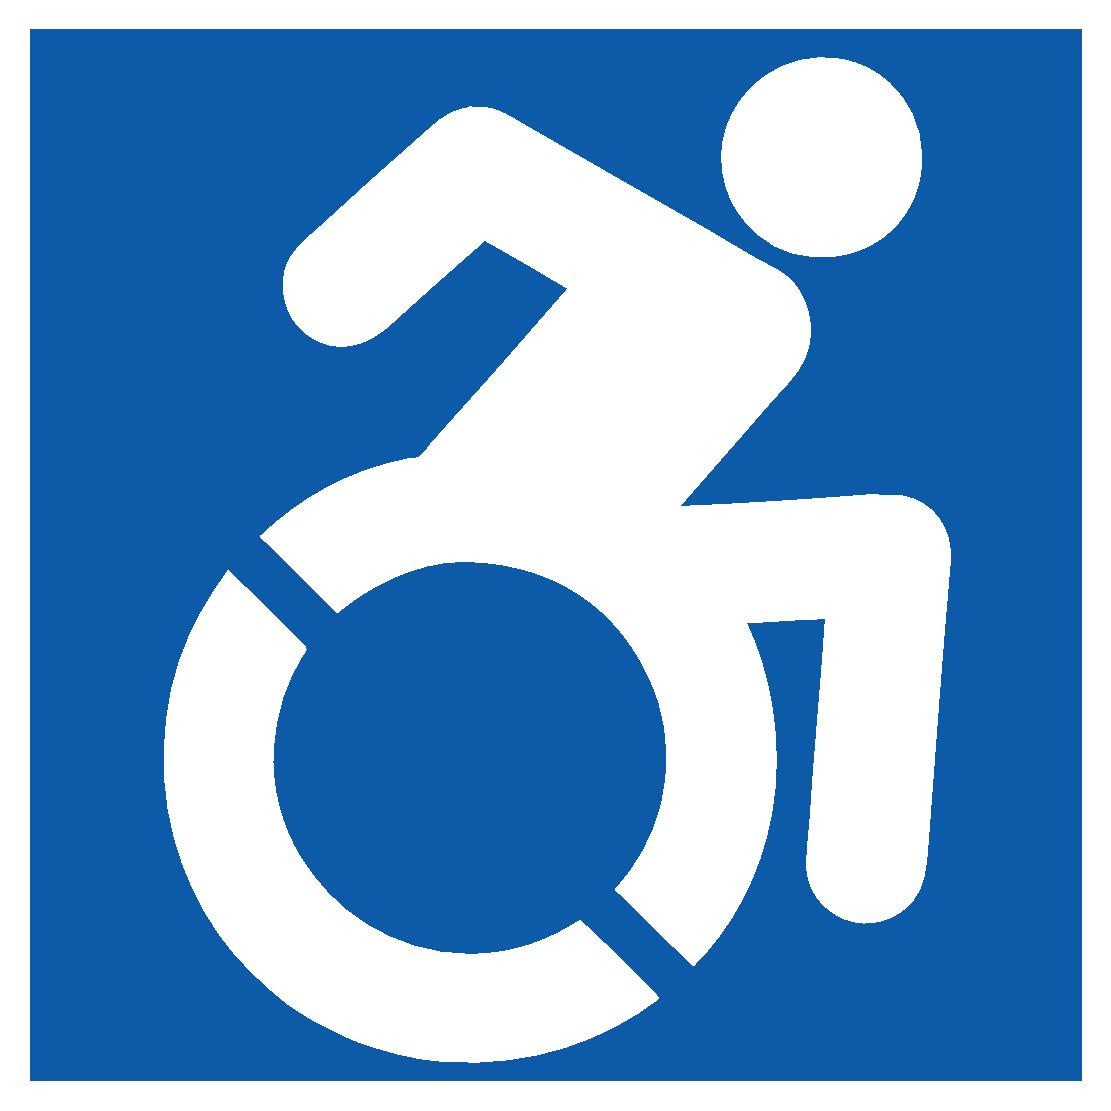 Source : www.accessibleicon.org